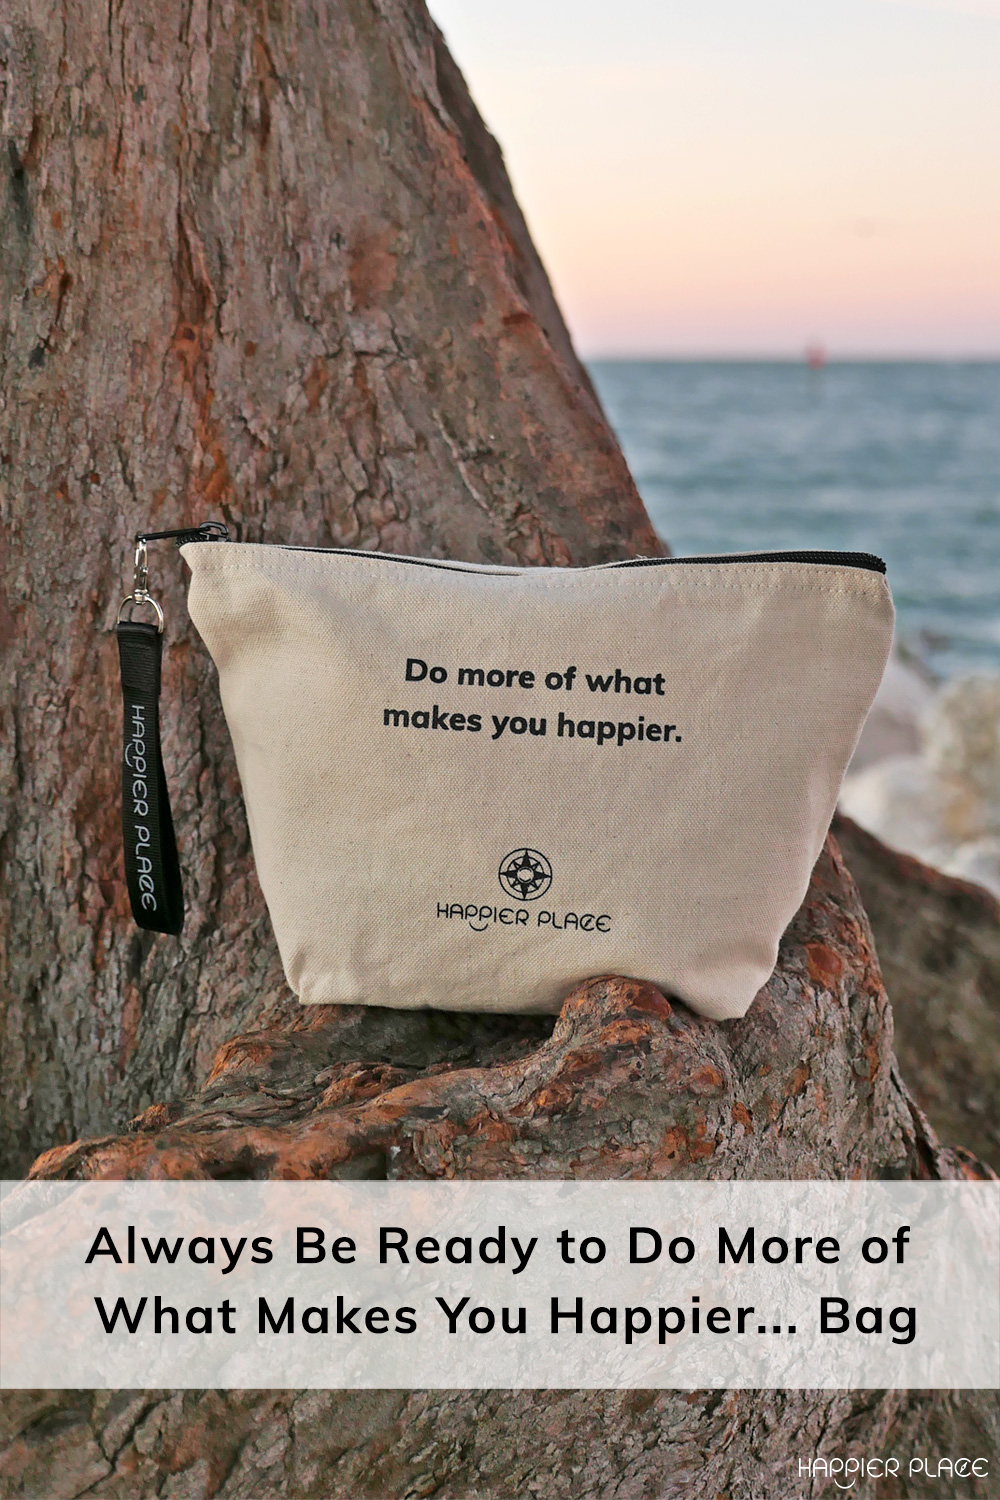 Do more of what makes you happier bag in Clearwater during sunset. #HappierPlace #shopsmall #giftideas #outdoors #happiness